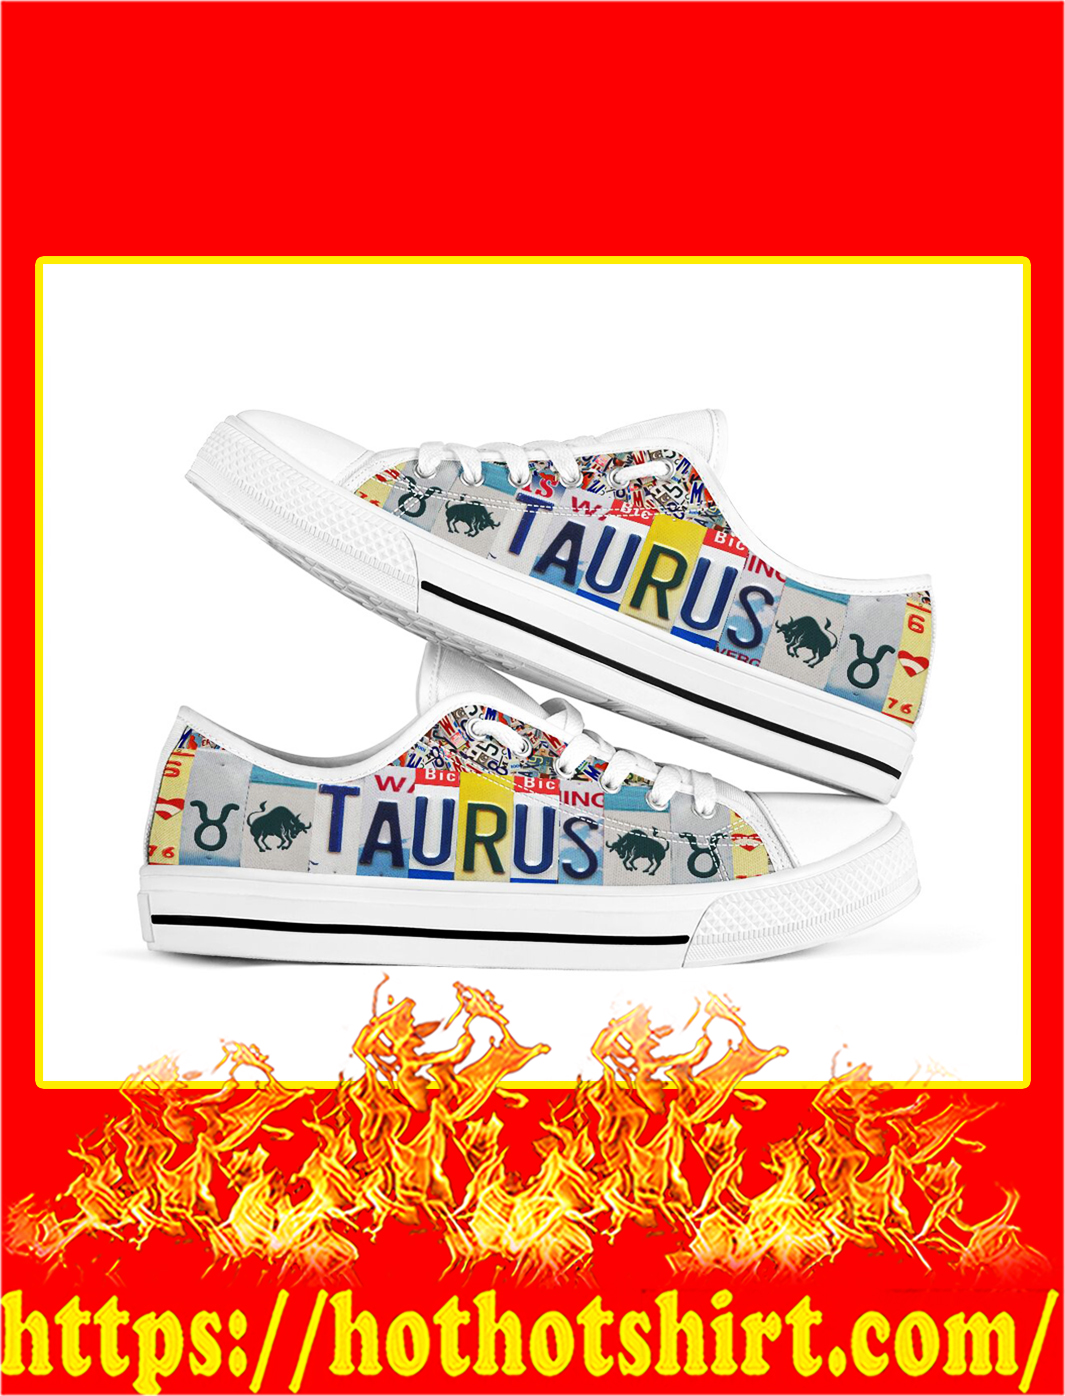 Taurus license plates low top shoes- pic 1